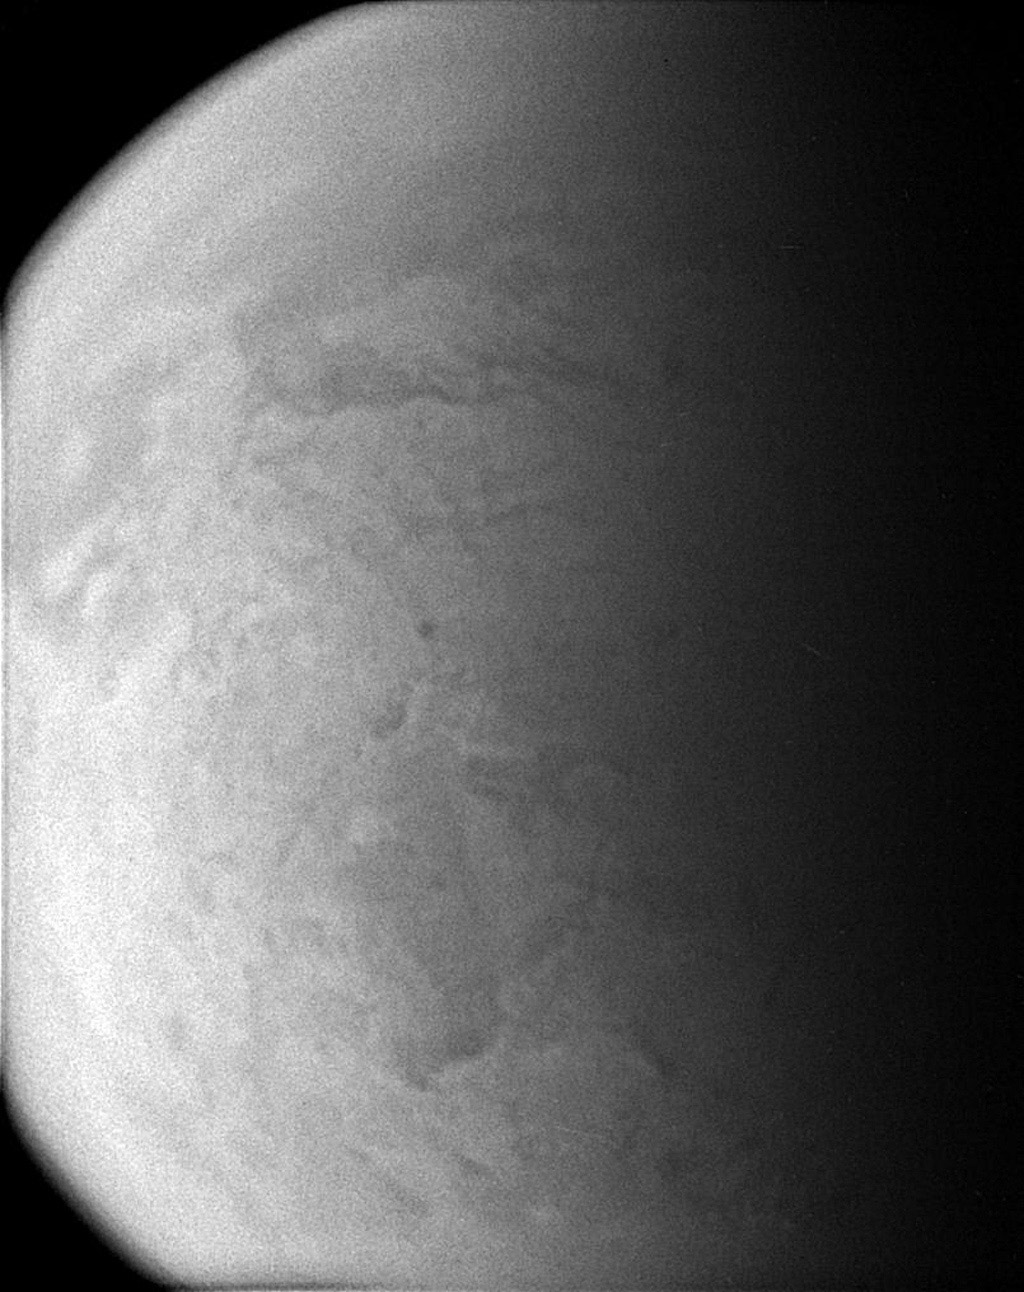 Straining to make out the surface of Titan through its murky atmosphere, NASA's Cassini spacecraft's wide angle camera manages to exploit one of the infrared spectral windows where the particulate smog is transparent enough for a peek.